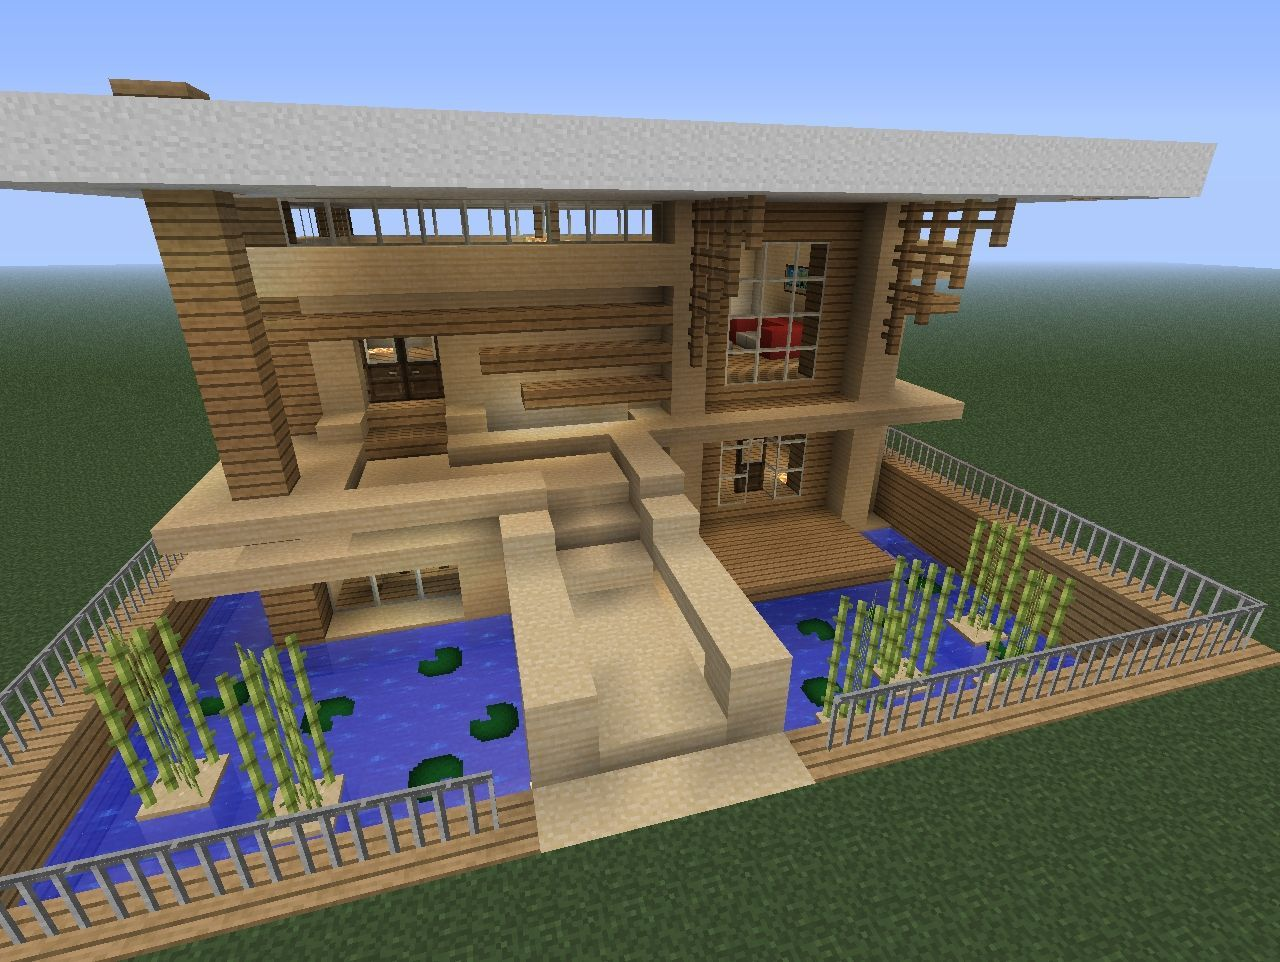 Best 25 minecraft houses ideas on pinterest minecraft for Minecraft maison design